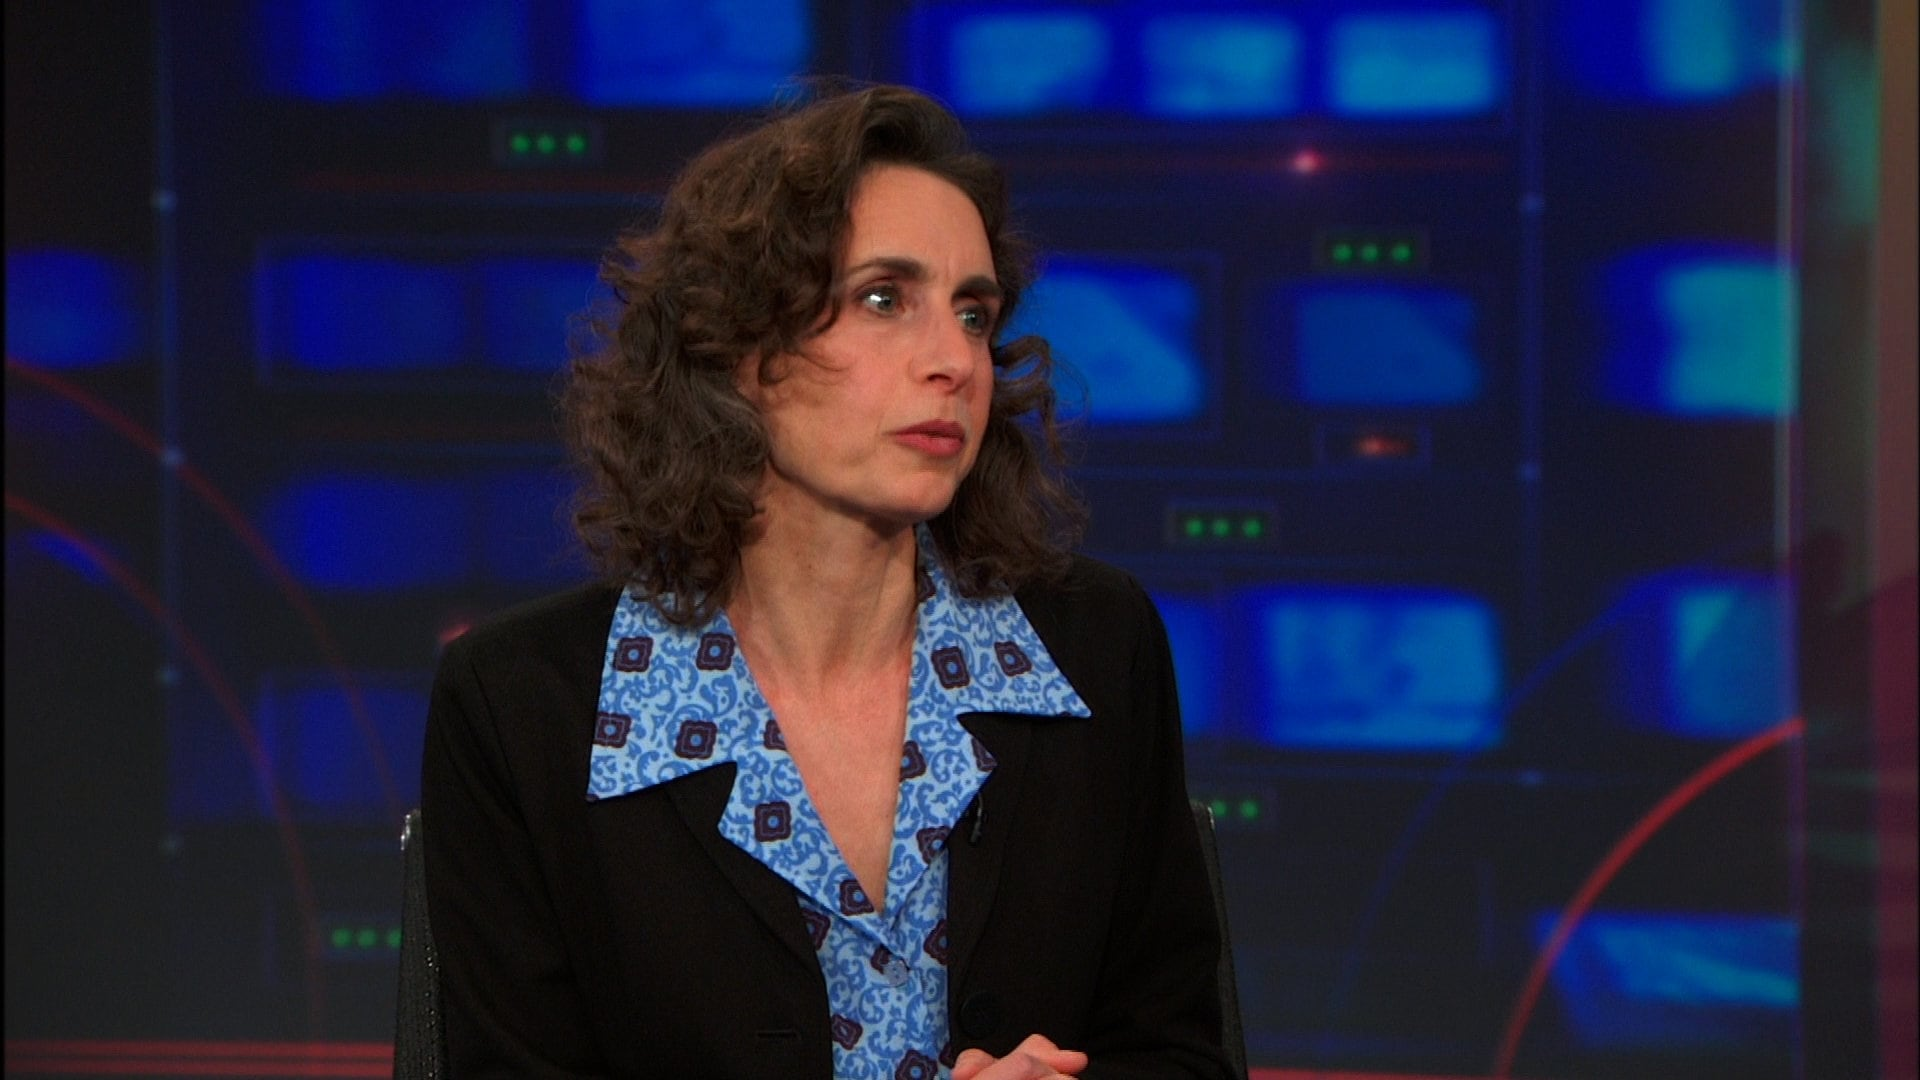 The Daily Show with Trevor Noah - Season 19 Episode 62 : Elizabeth Kolbert